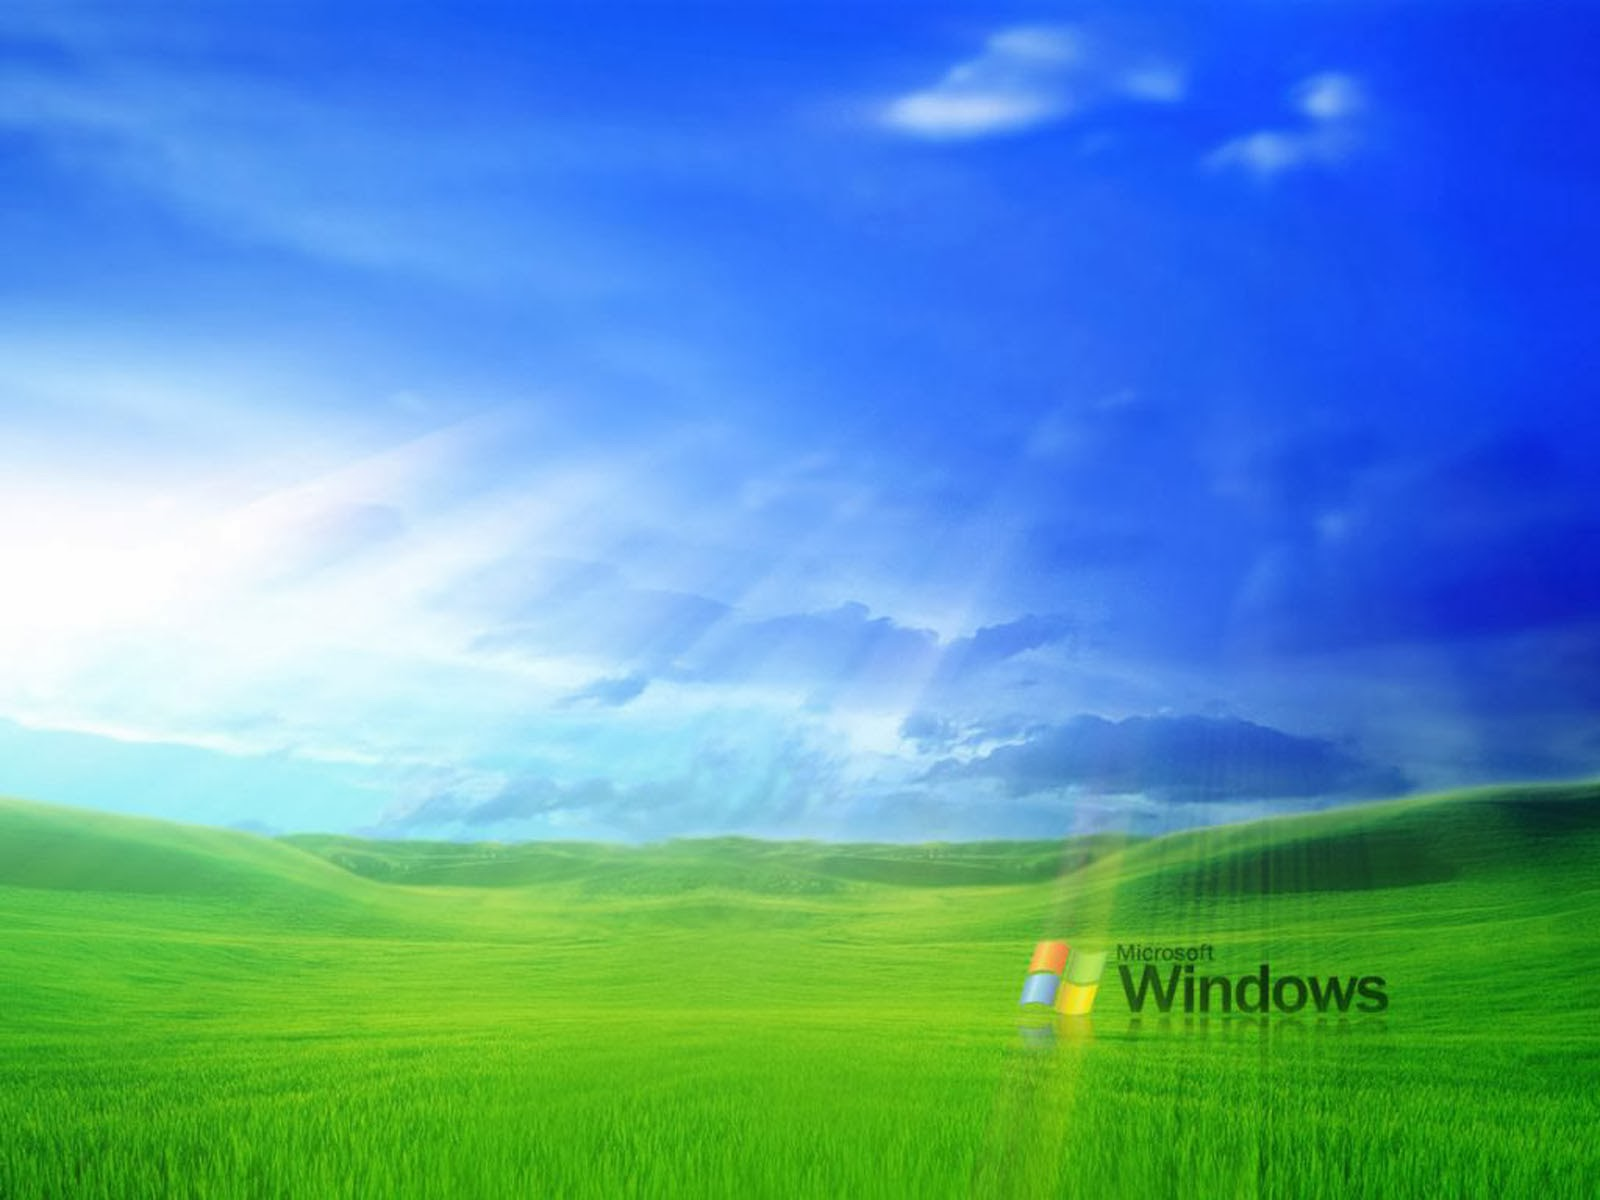 Обои grass, windows. Windows foto 16